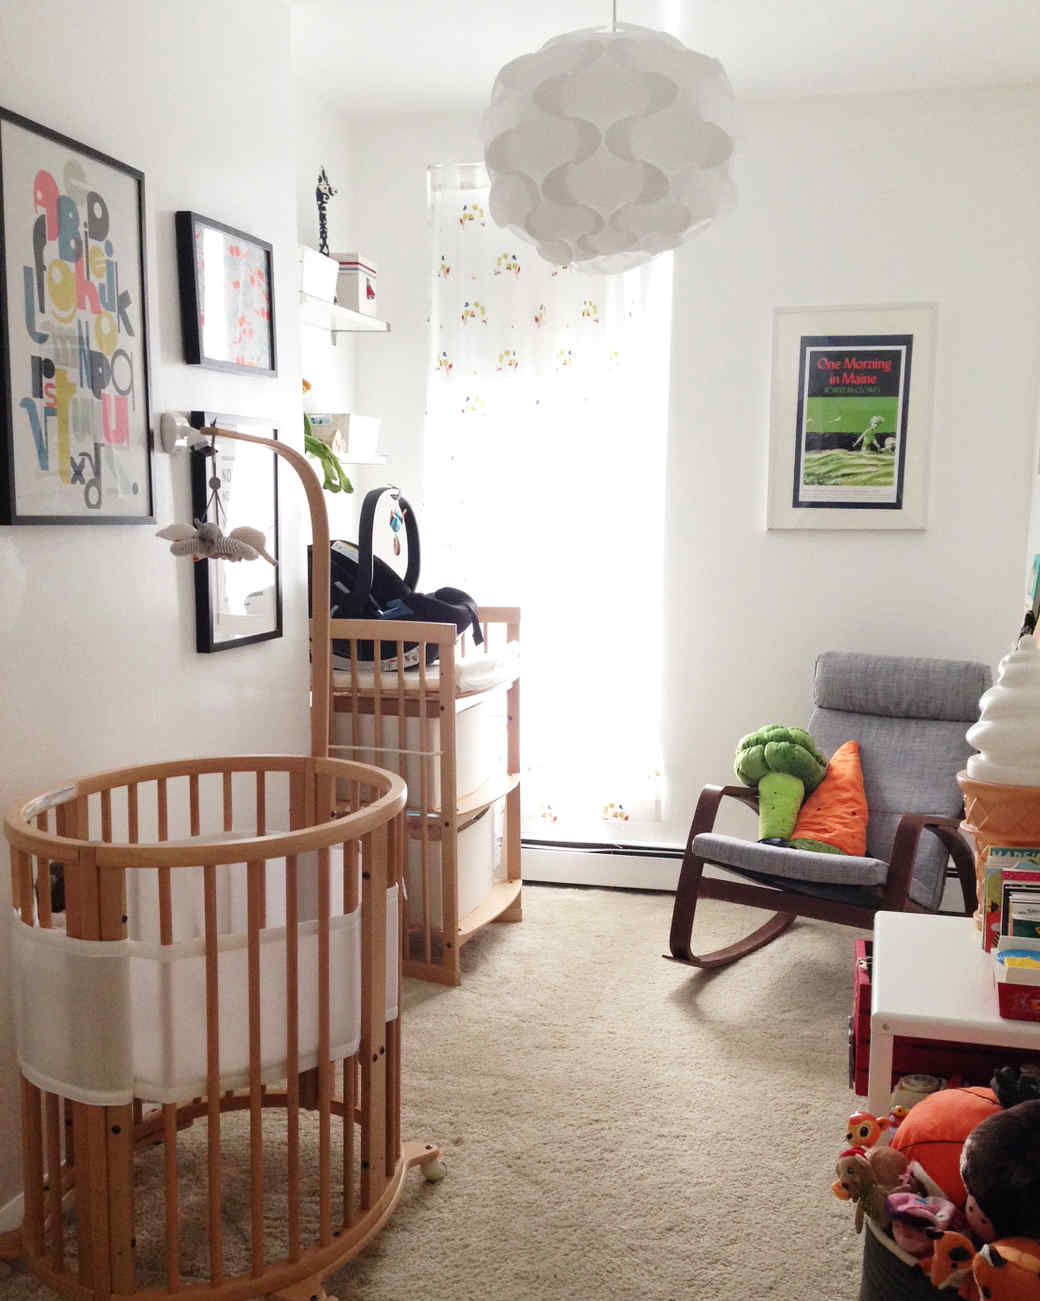 Superbe From Storage Space To Cozy Baby Nursery: See The Before And After Pictures  | Martha Stewart